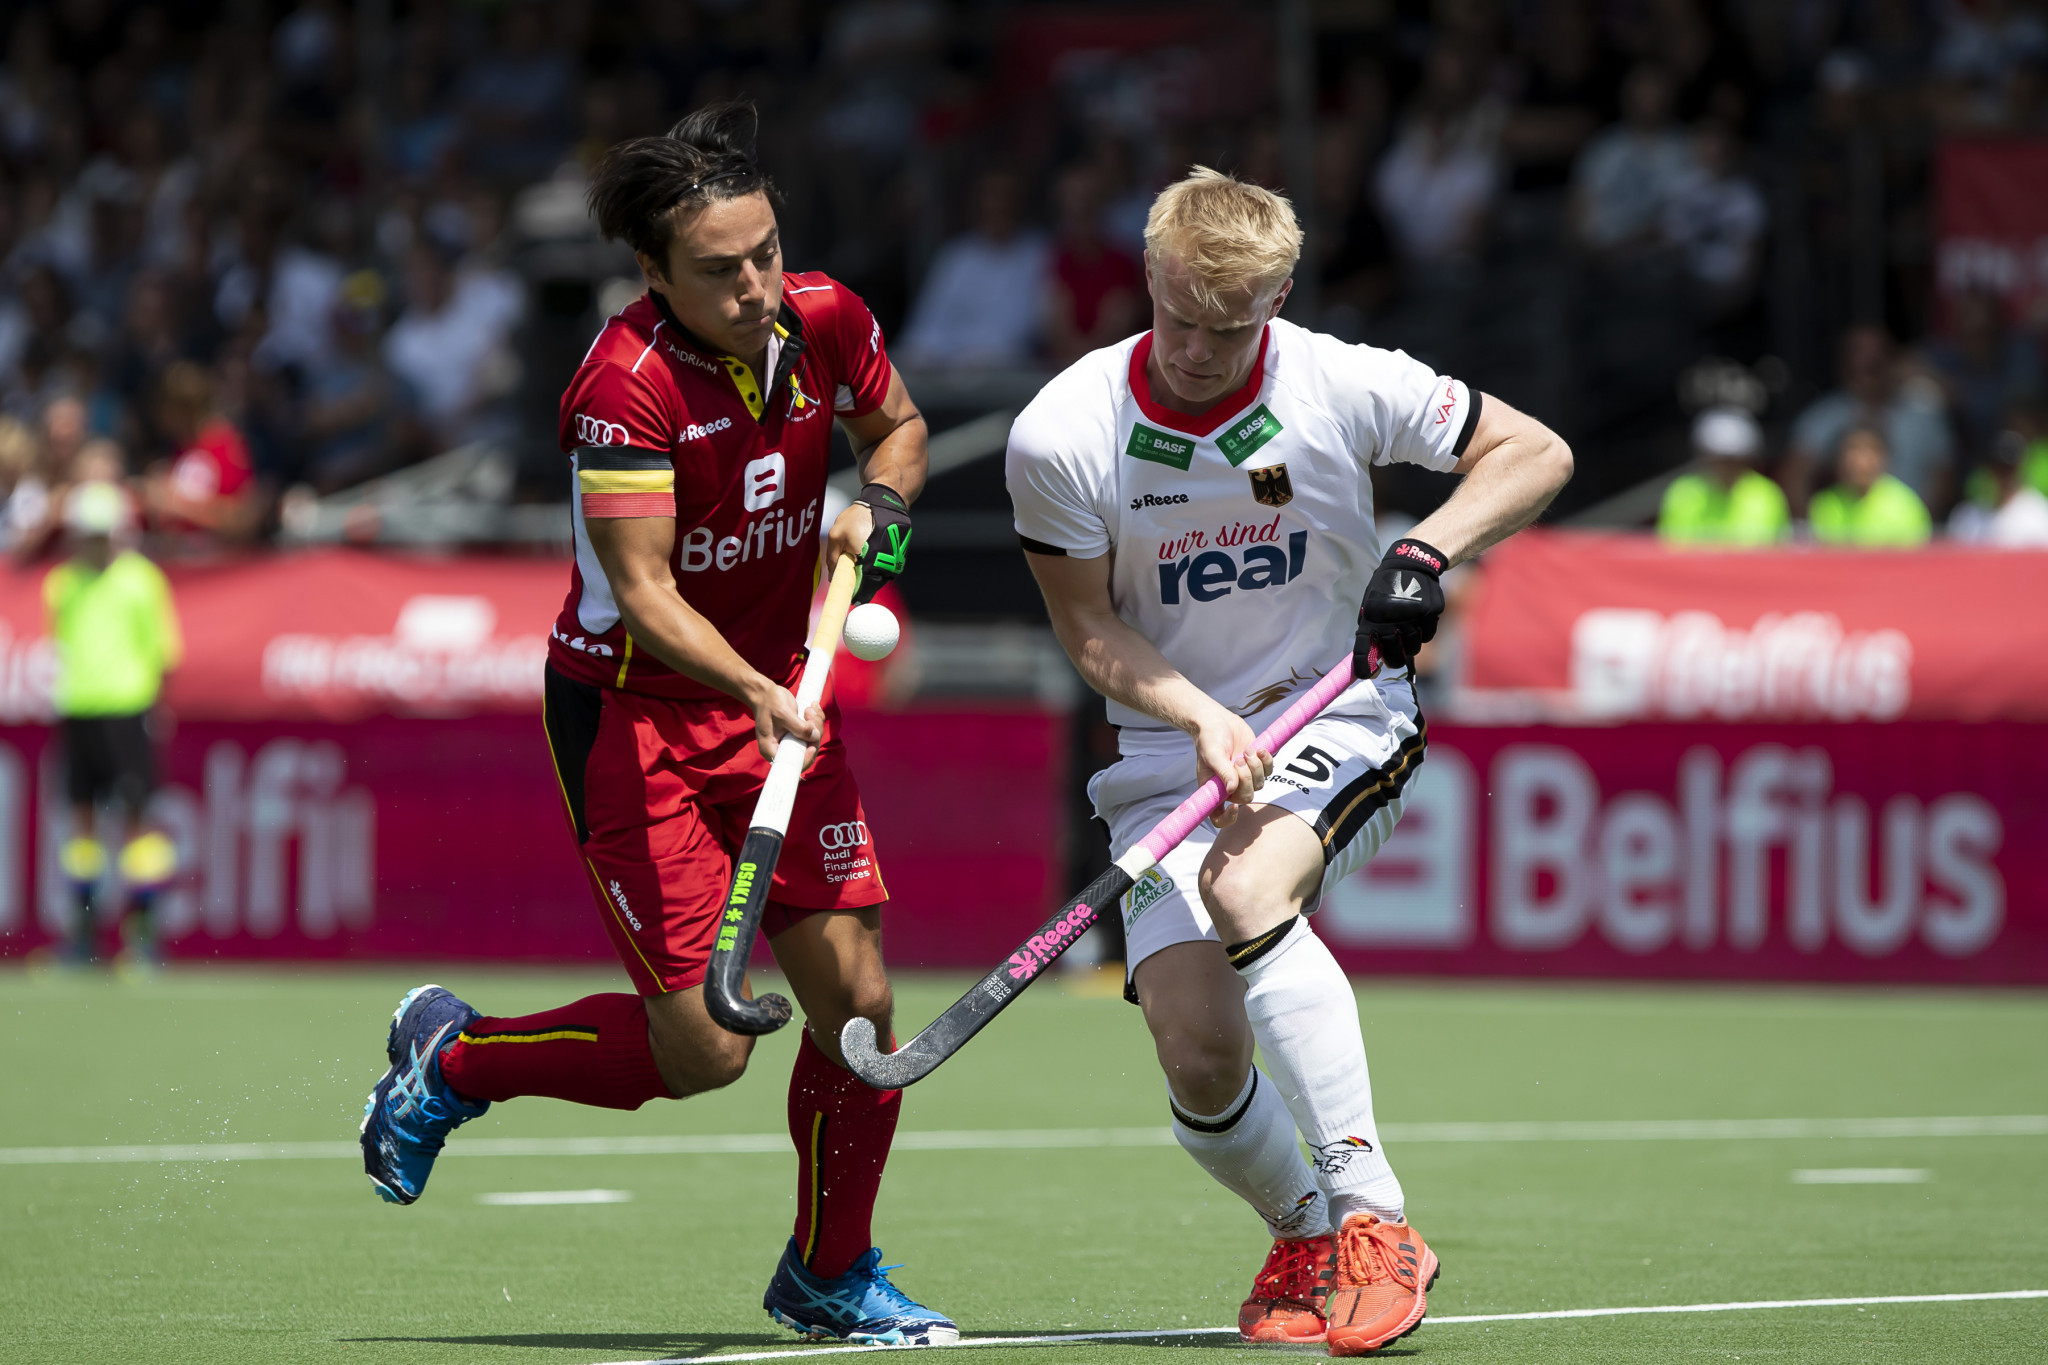 Germany boost Grand Final hopes with victory over Spain in men's FIH Pro League